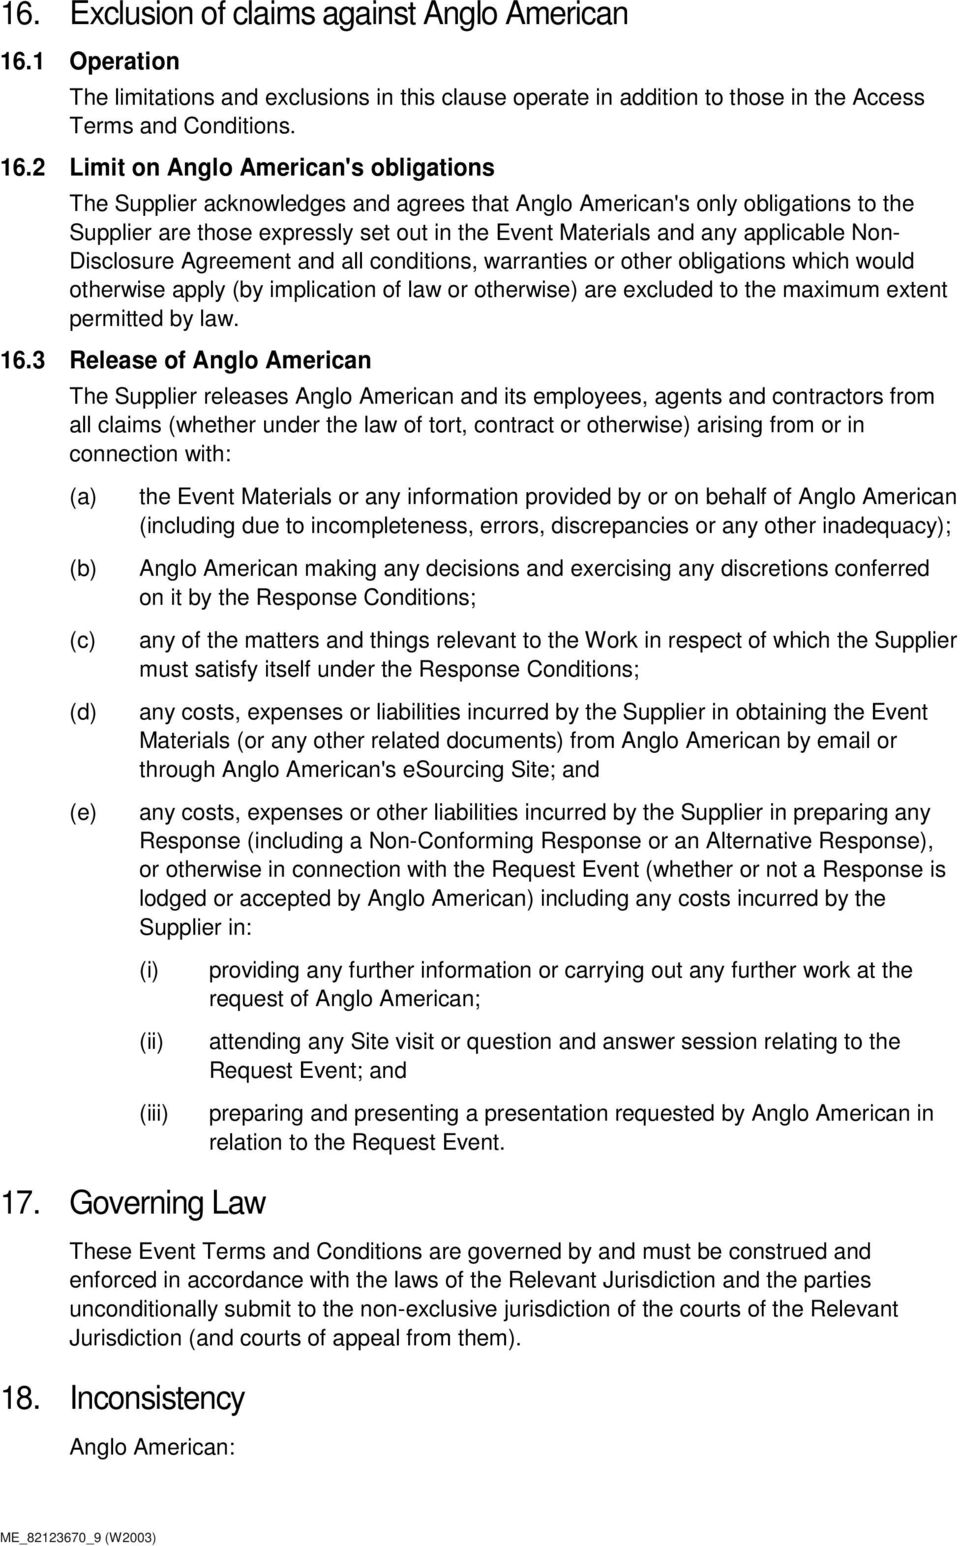 2 Limit on Anglo American's obligations The Supplier acknowledges and agrees that Anglo American's only obligations to the Supplier are those expressly set out in the Event Materials and any